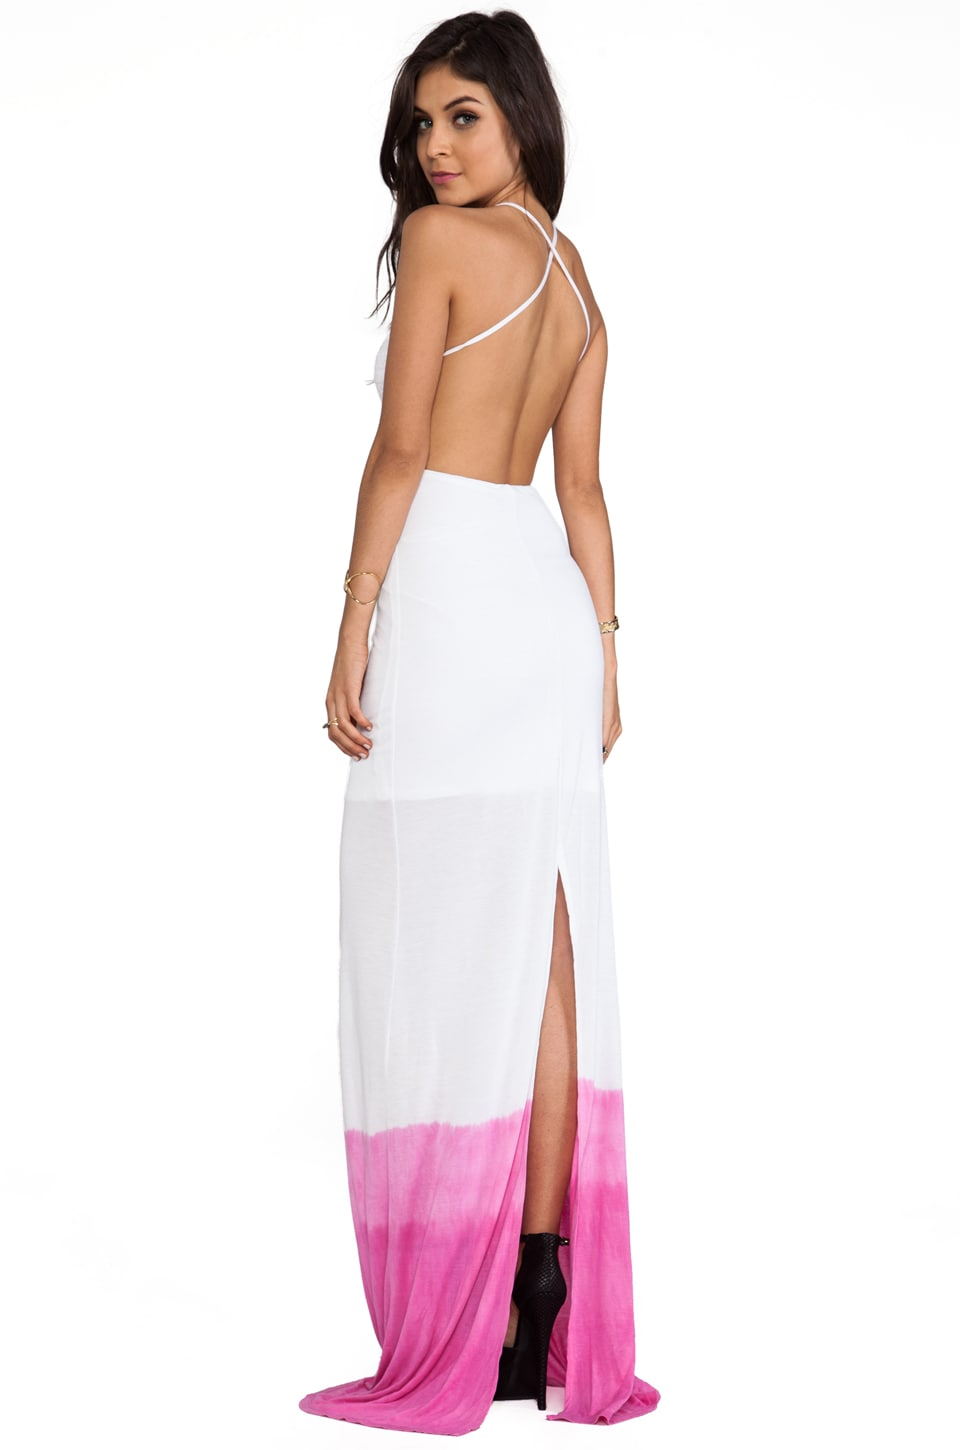 WOODLEIGH Sydney Dip Dye Maxi Dress in Fuchsia